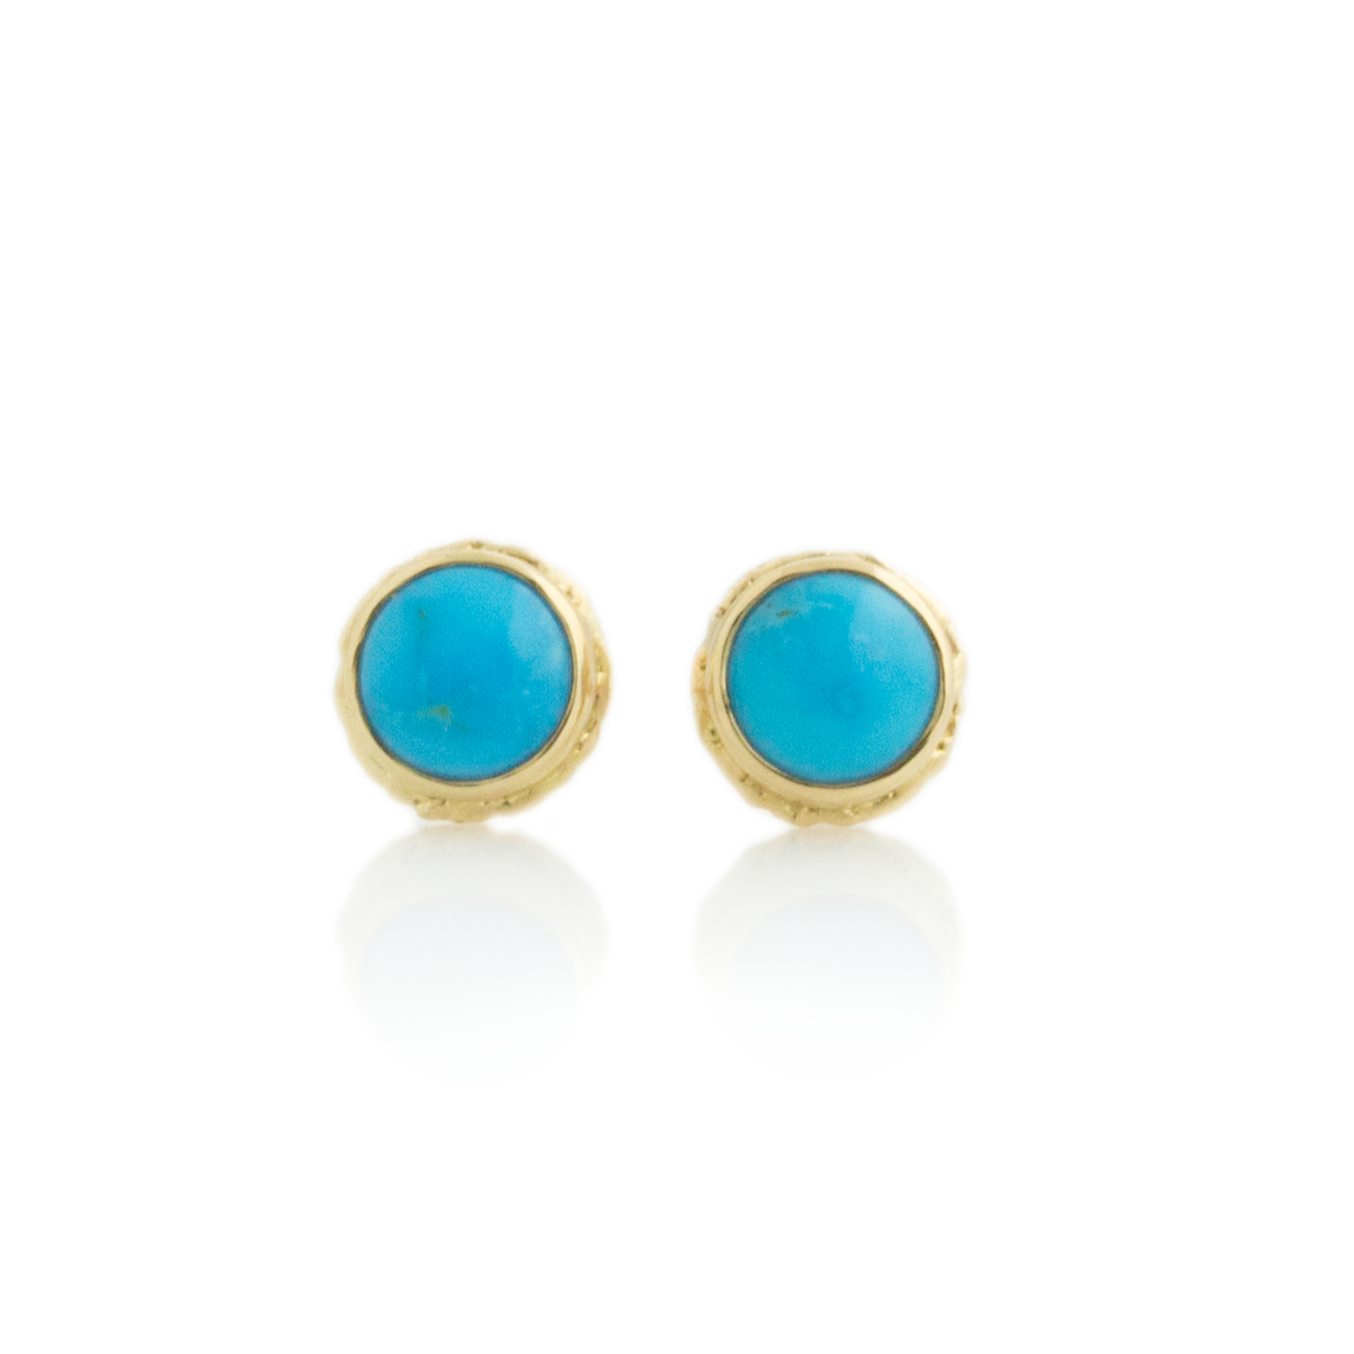 14K Gold Sleeping Beauty Turquoise Post Earrings